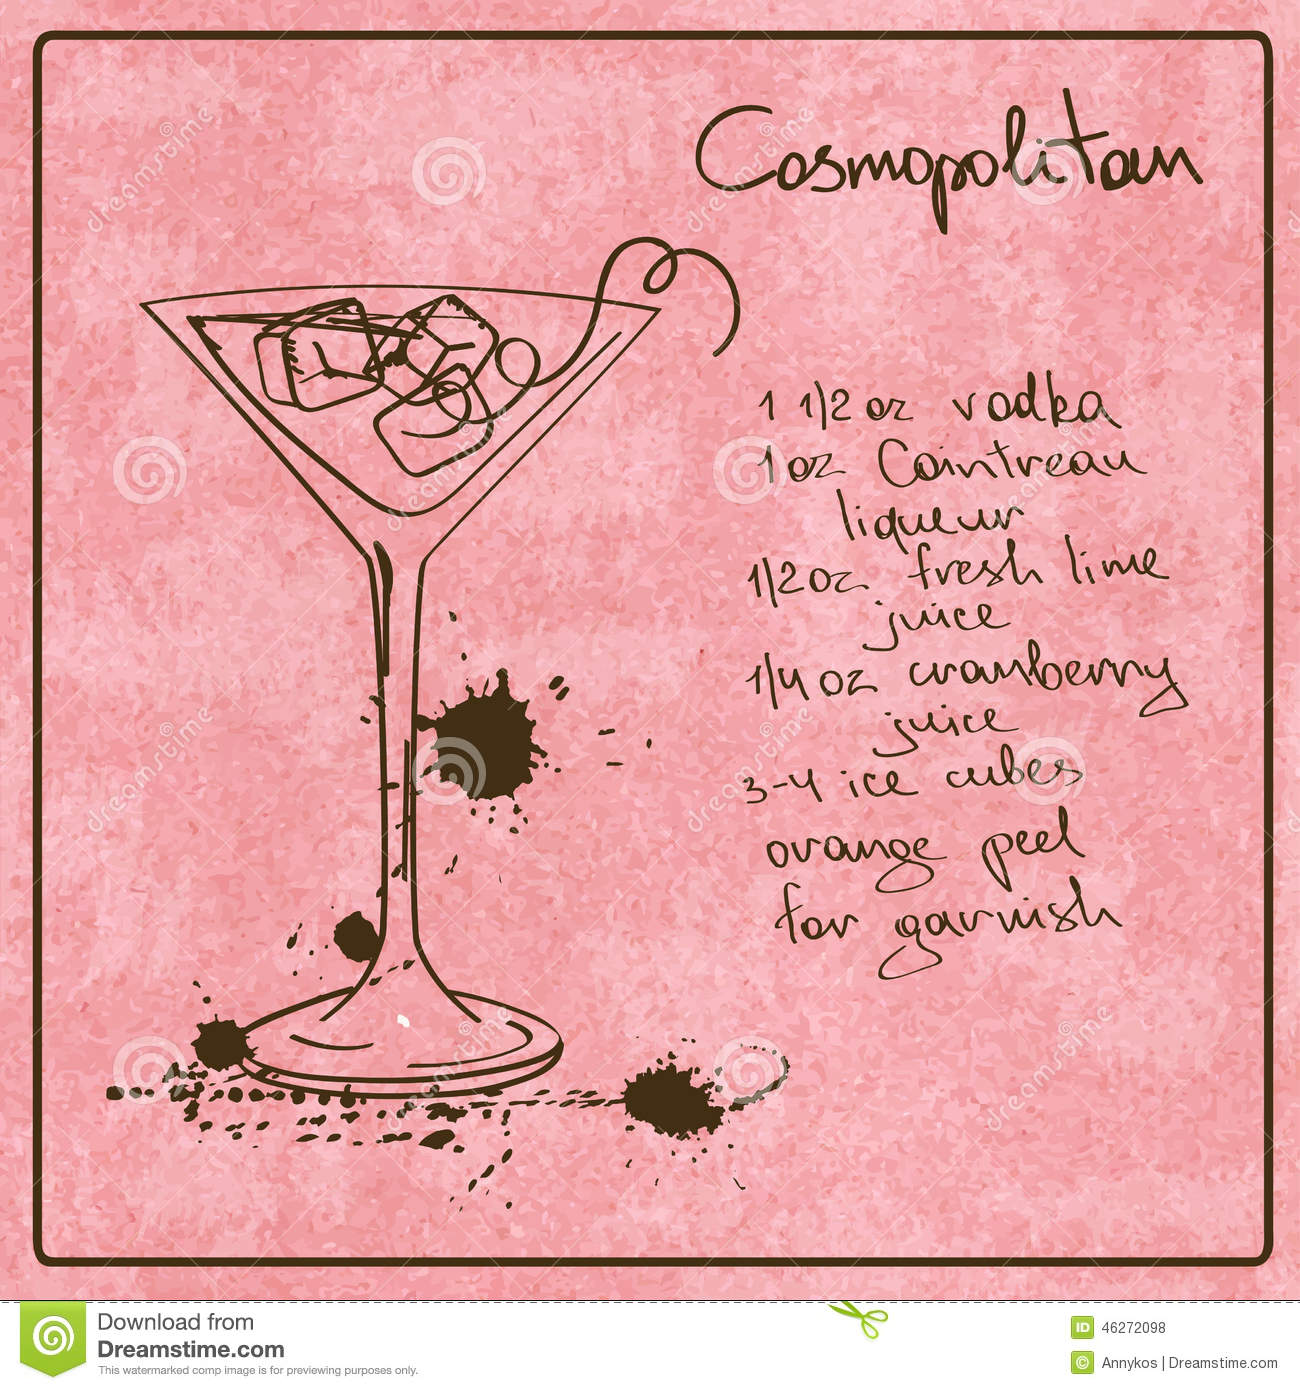 Hand drawn cosmopolitan cocktail stock vector for Cocktail recipes with ingredients on hand